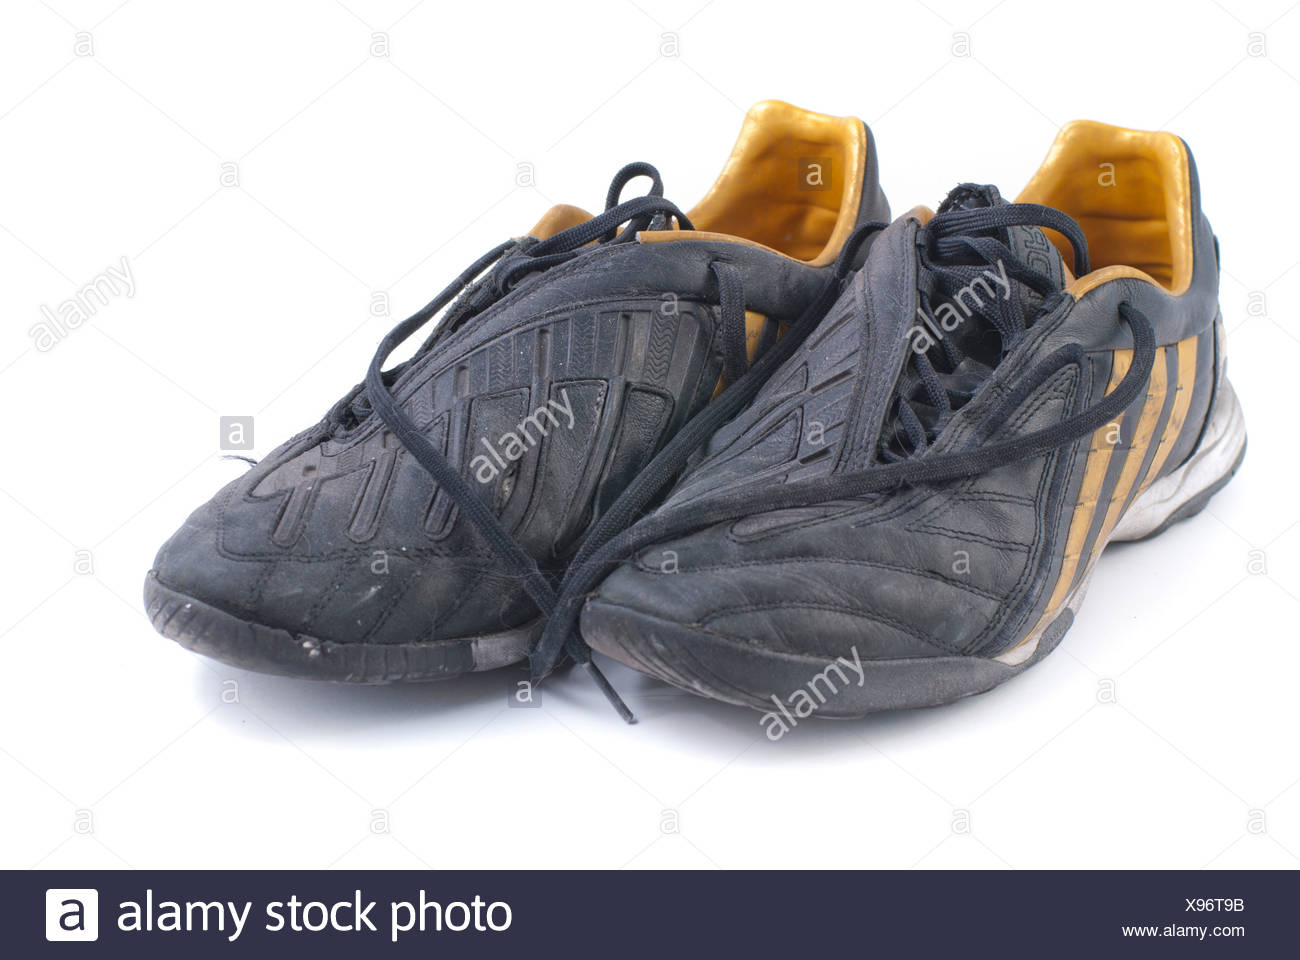 0b668e251 two old black soccer shoes Stock Photo: 281048583 - Alamy